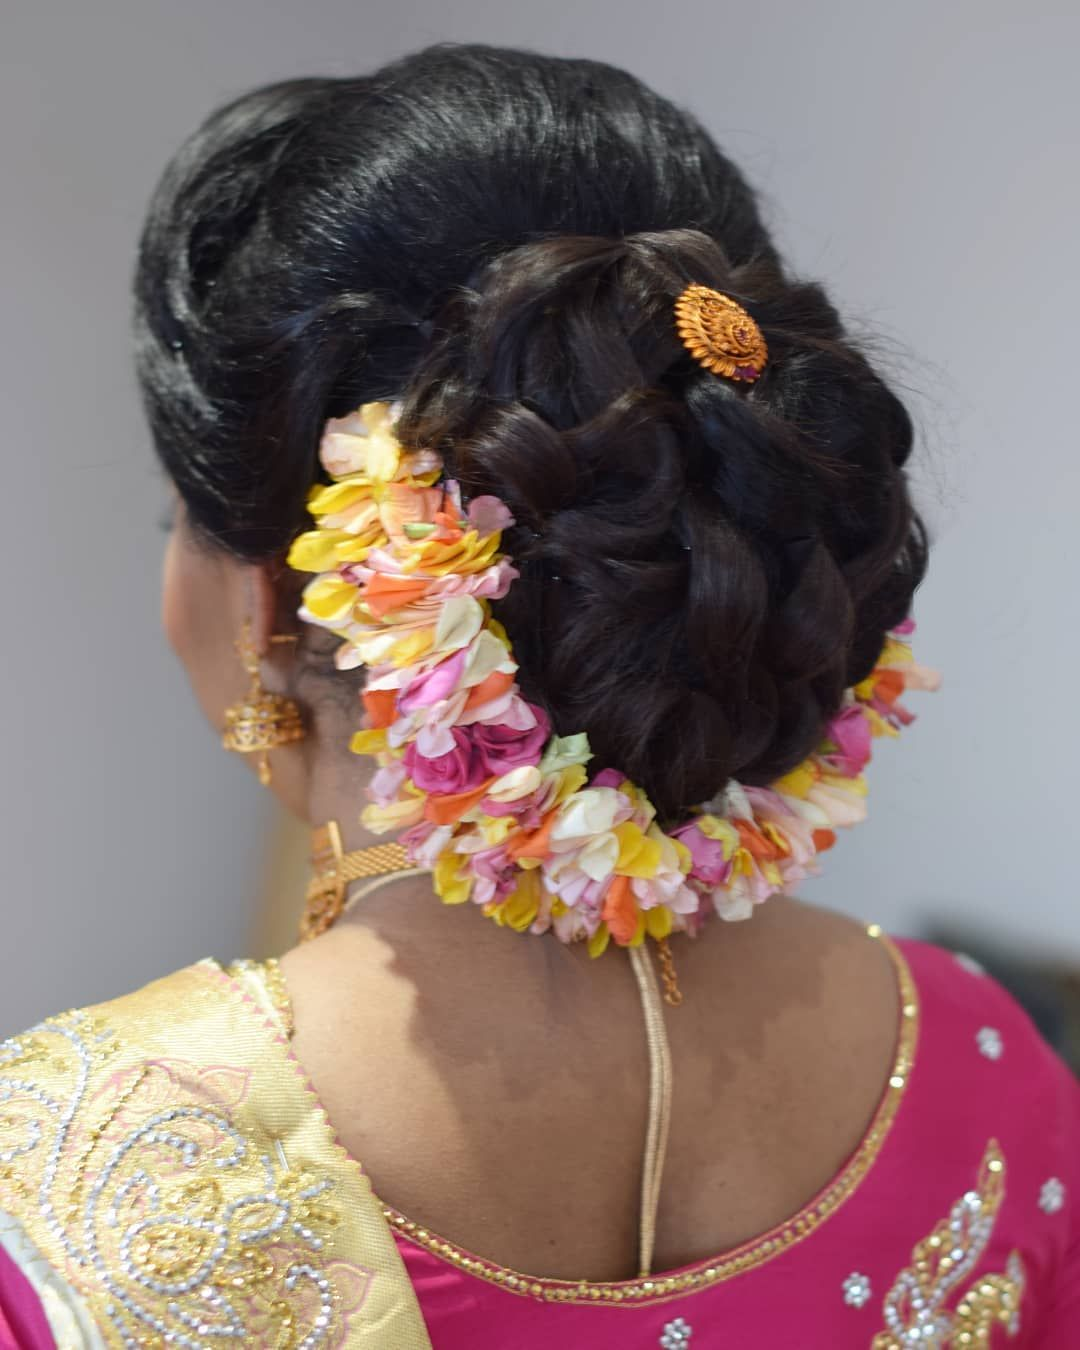 Bridal Hair For Luxsmie Who Got Married Yesterday This Modern Bride Opted For An Updo And Left The Choice Of Hair Garlan Bridal Hair Hair Garland Big Bun Hair